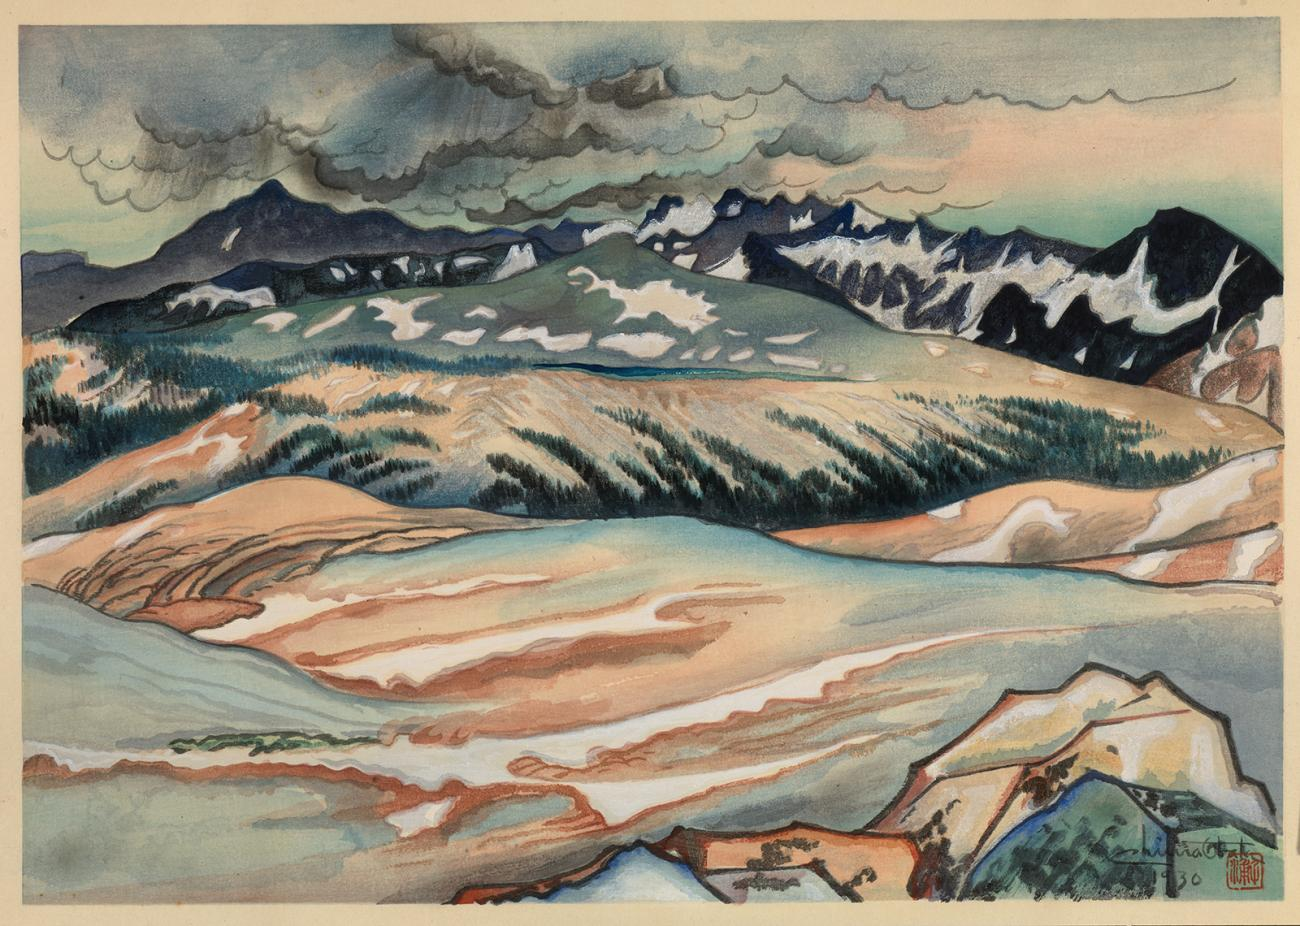 A watercolor image of landscape with snow.